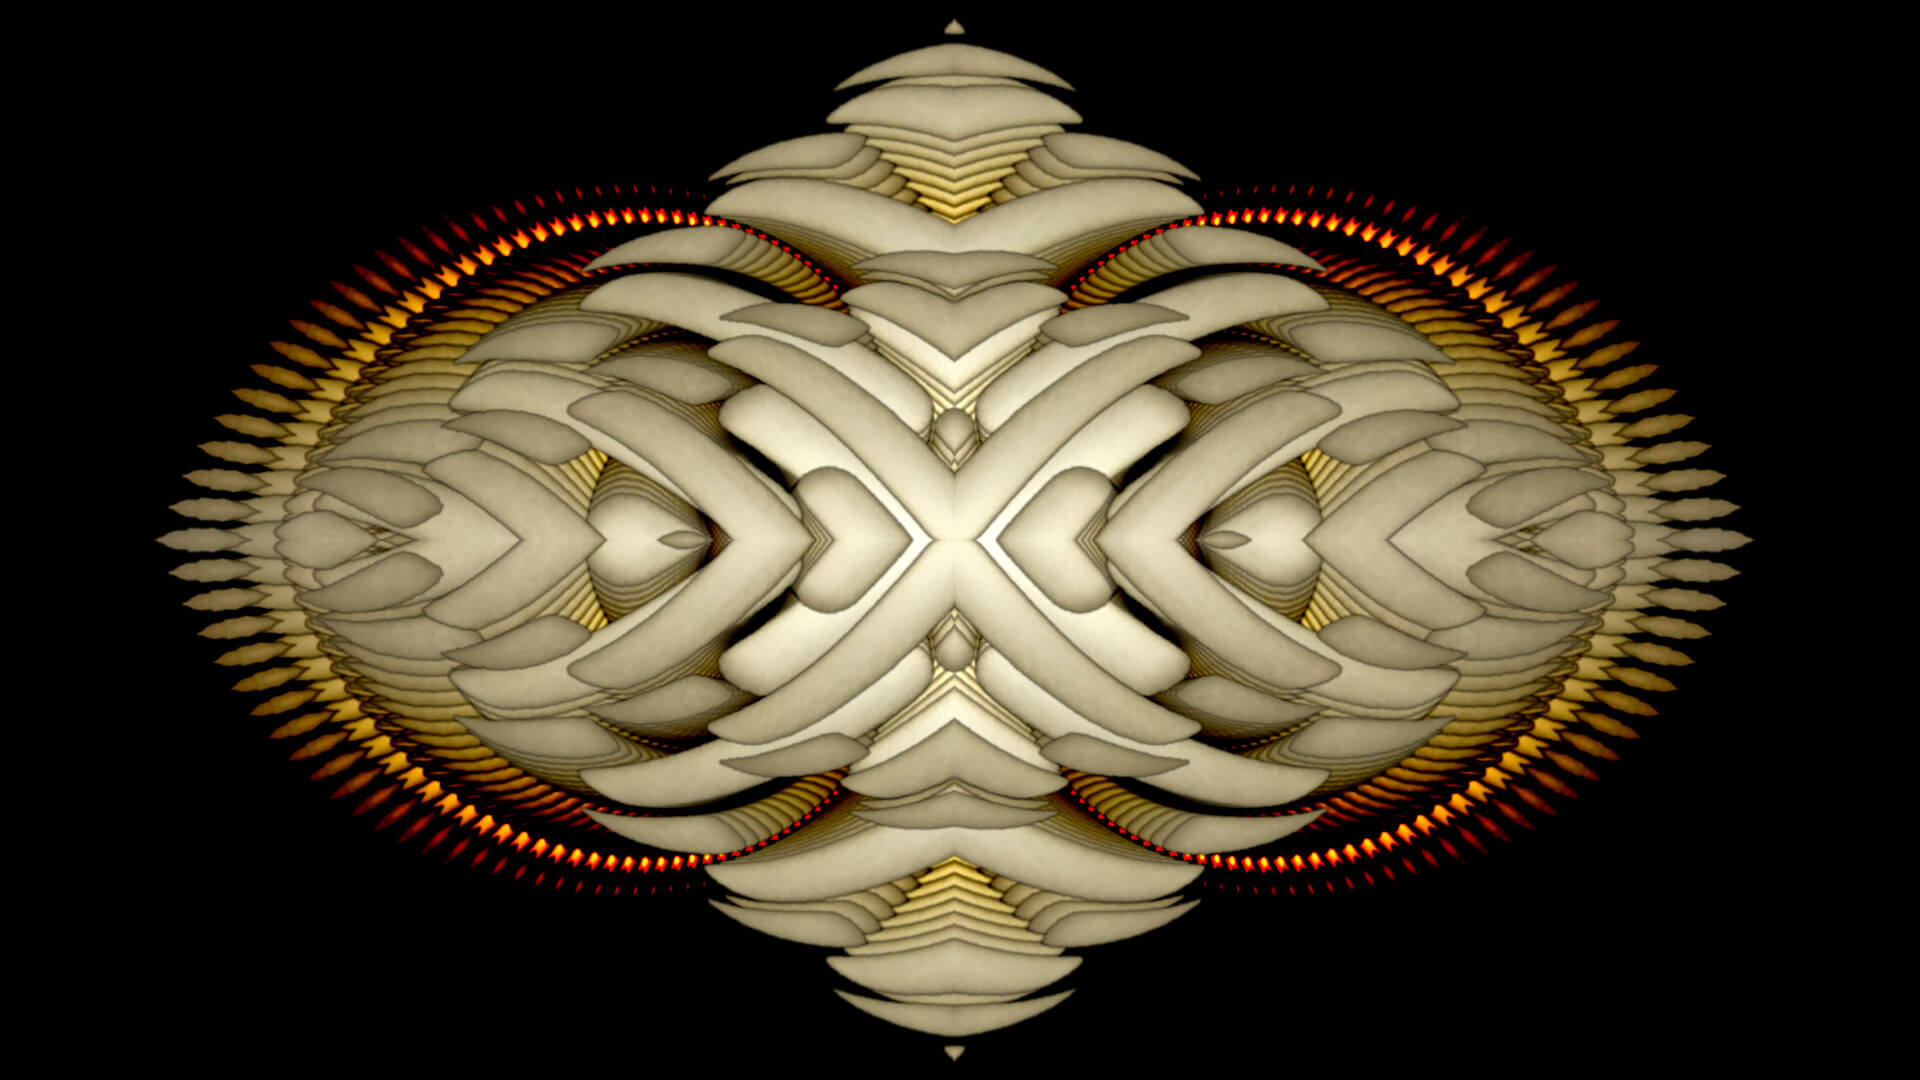 You let yourself be  - digital abstract art by Mitek